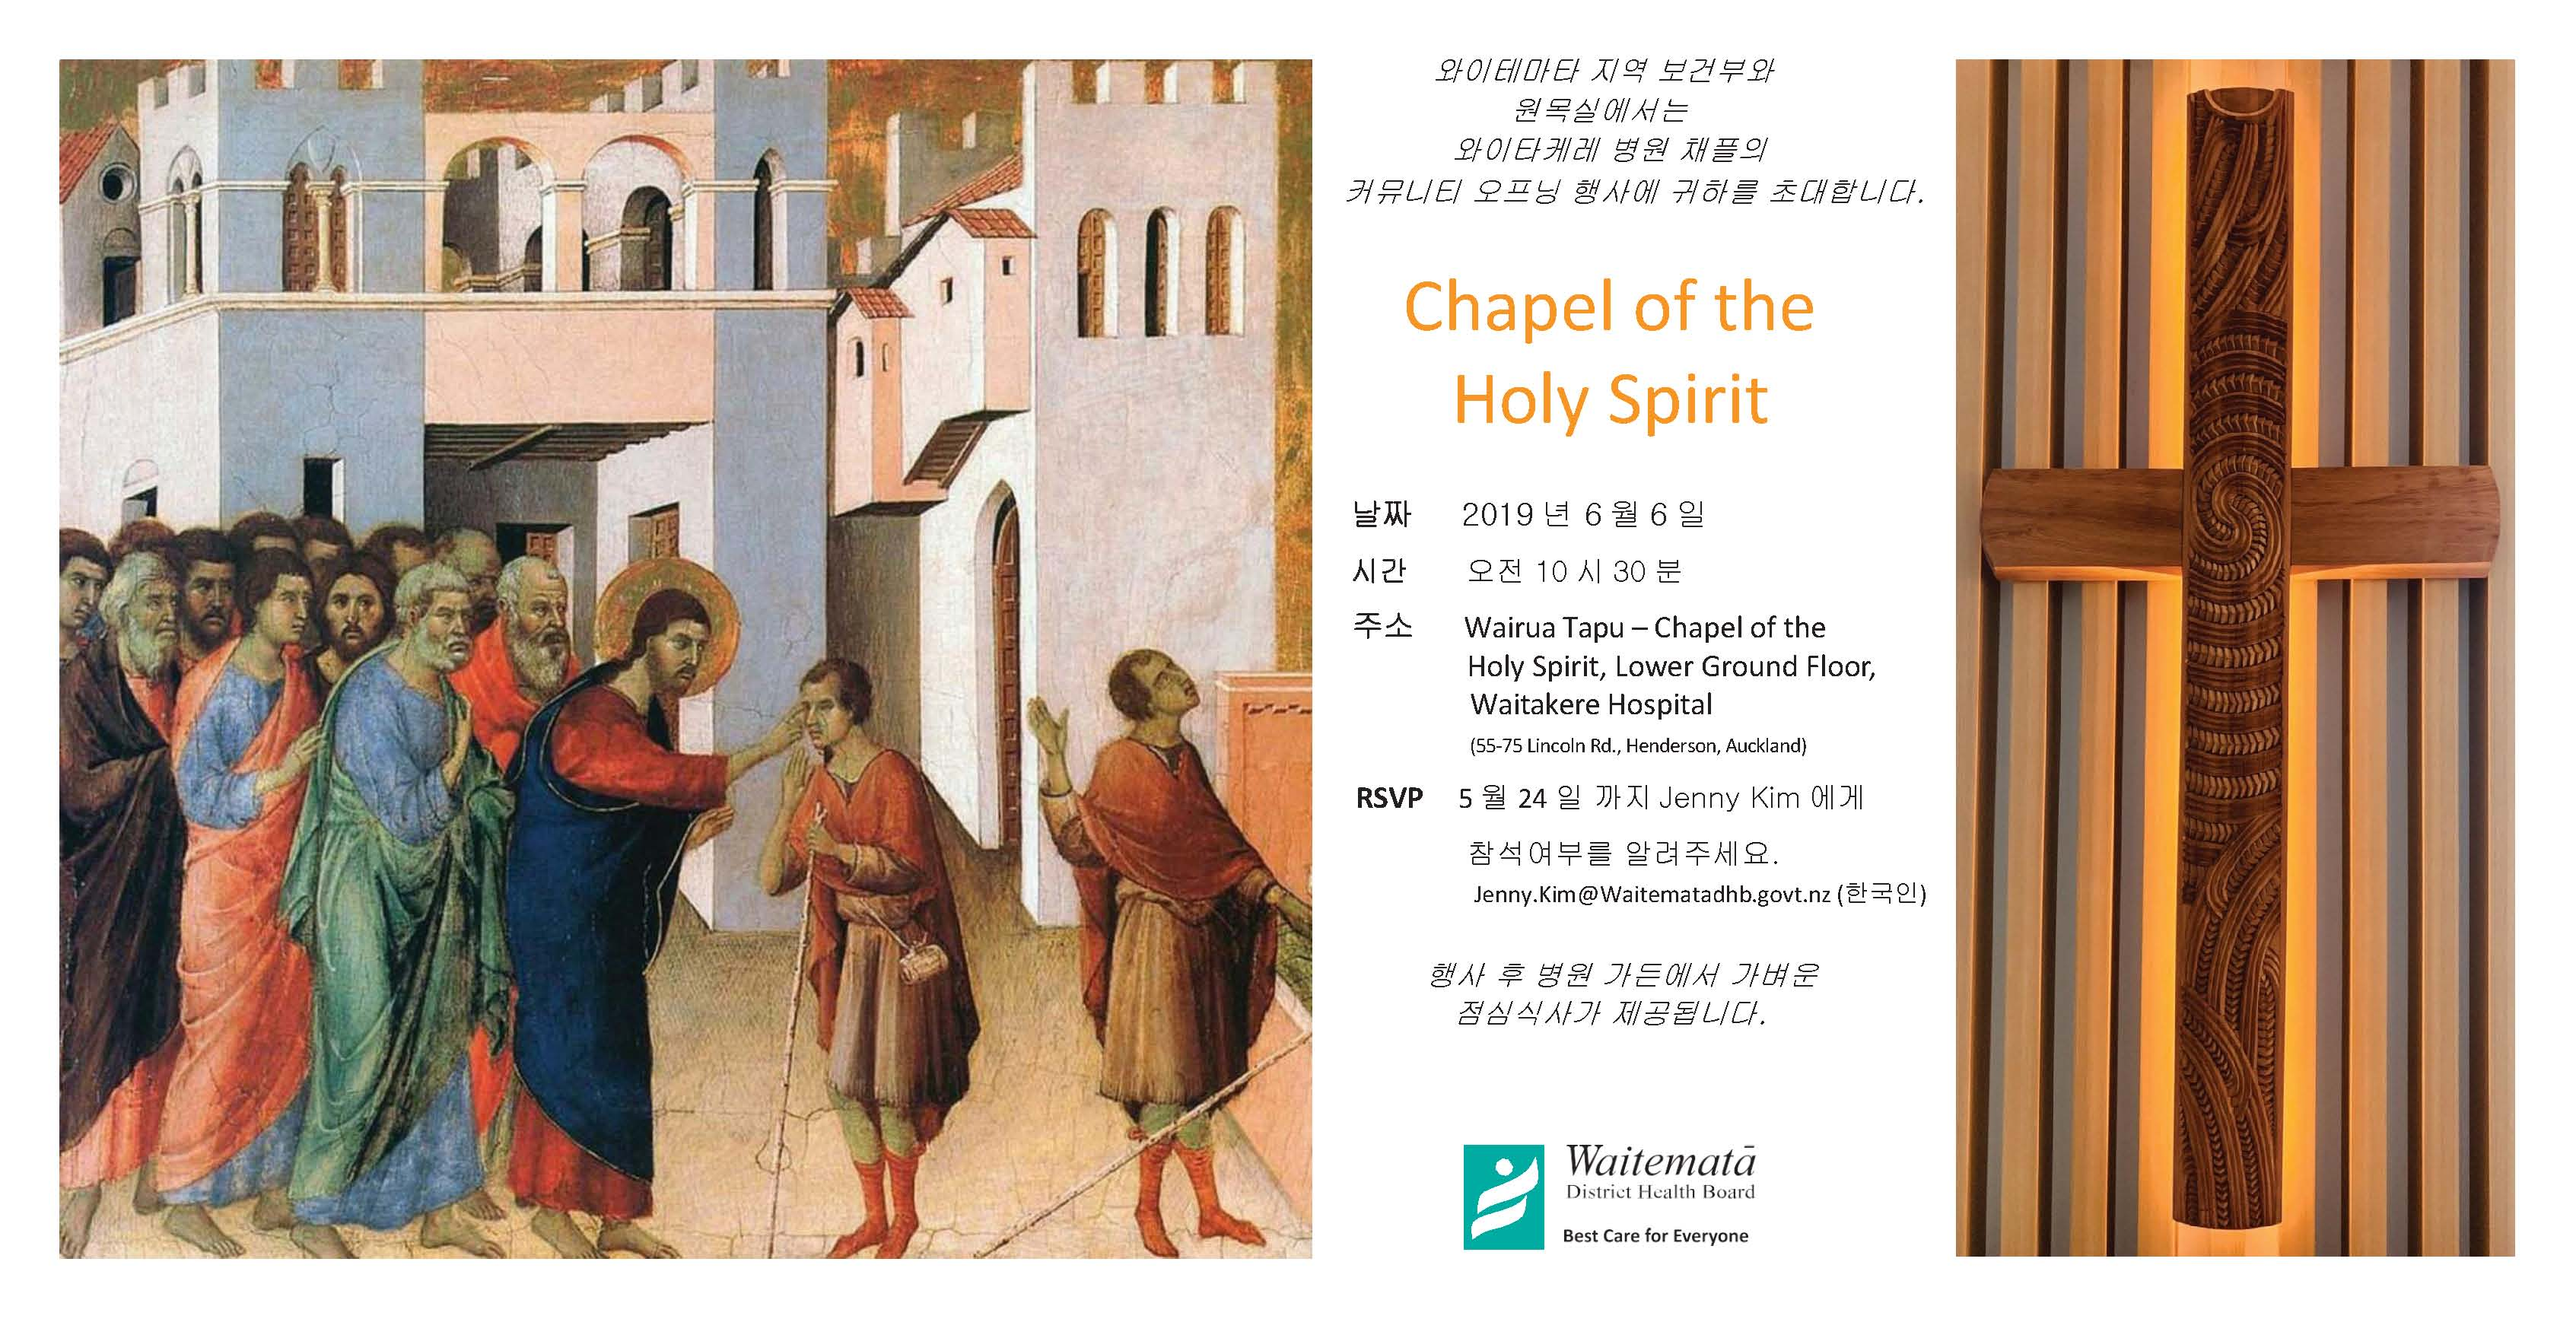 Korean Invitation - The Holy Spirit Wairua Tapu - 6 June .jpg